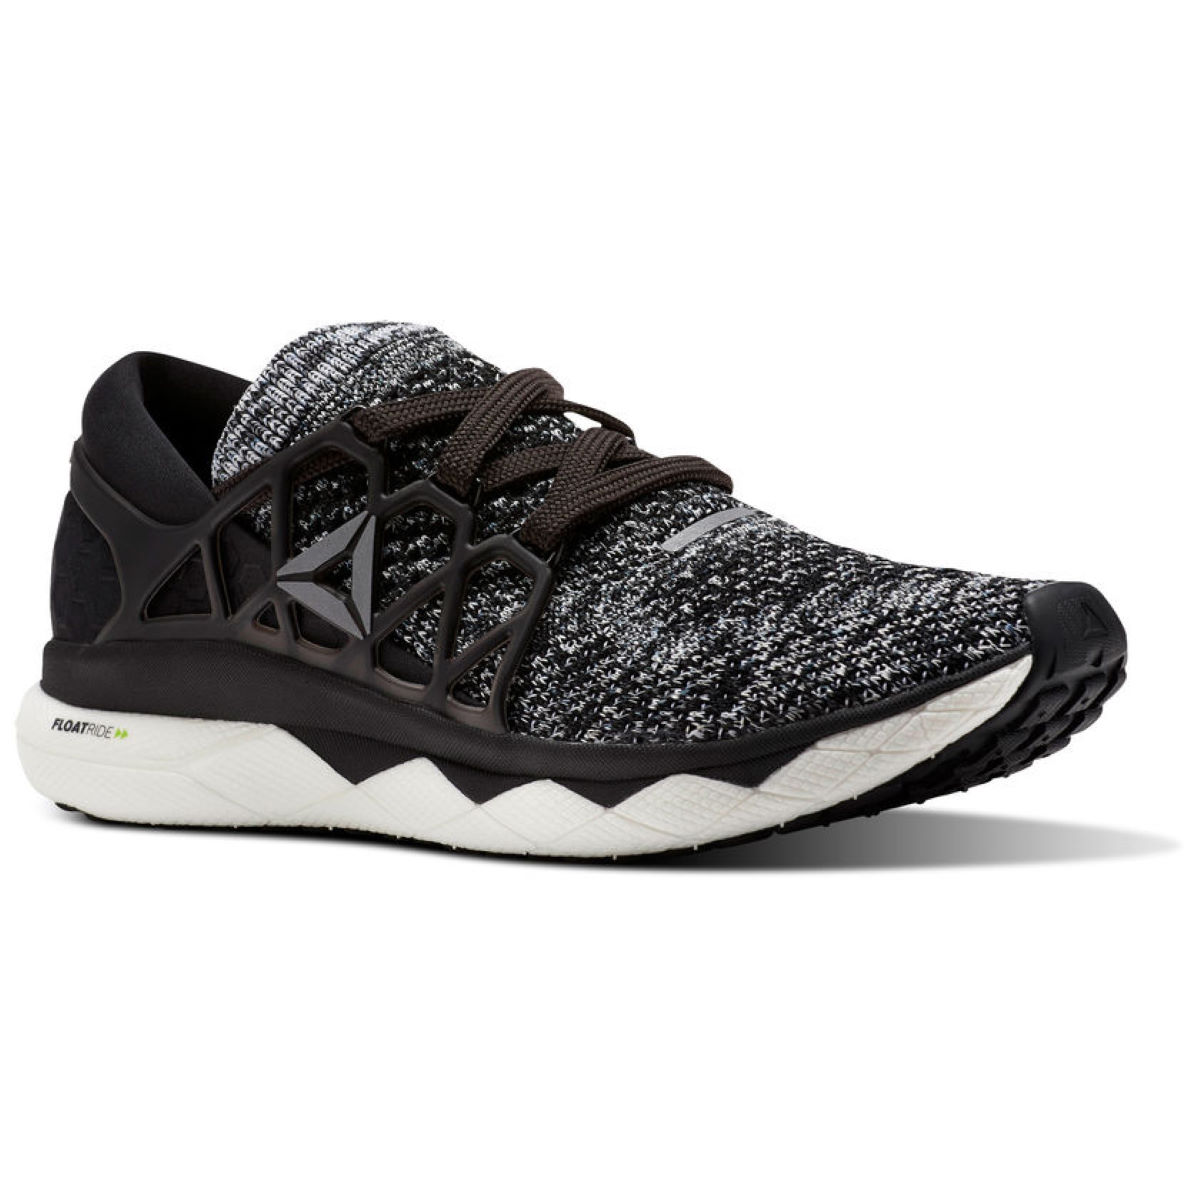 Reebok Floatride Run Shoes - UK 9.5 BLACK/COAL/WHITE